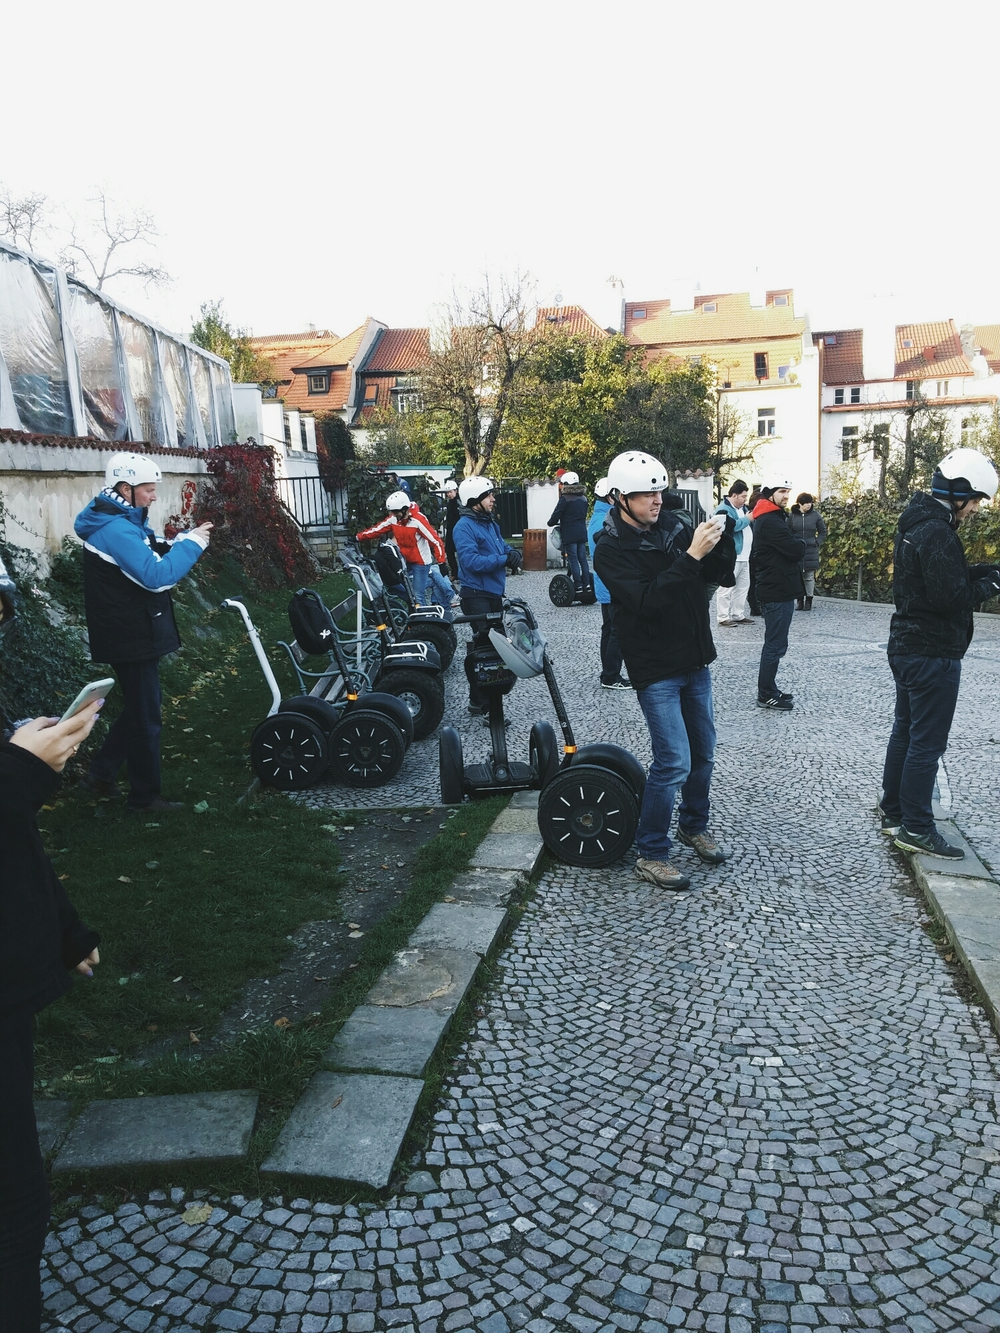 {Just one of the many   segway tours we saw throughout our stay.}